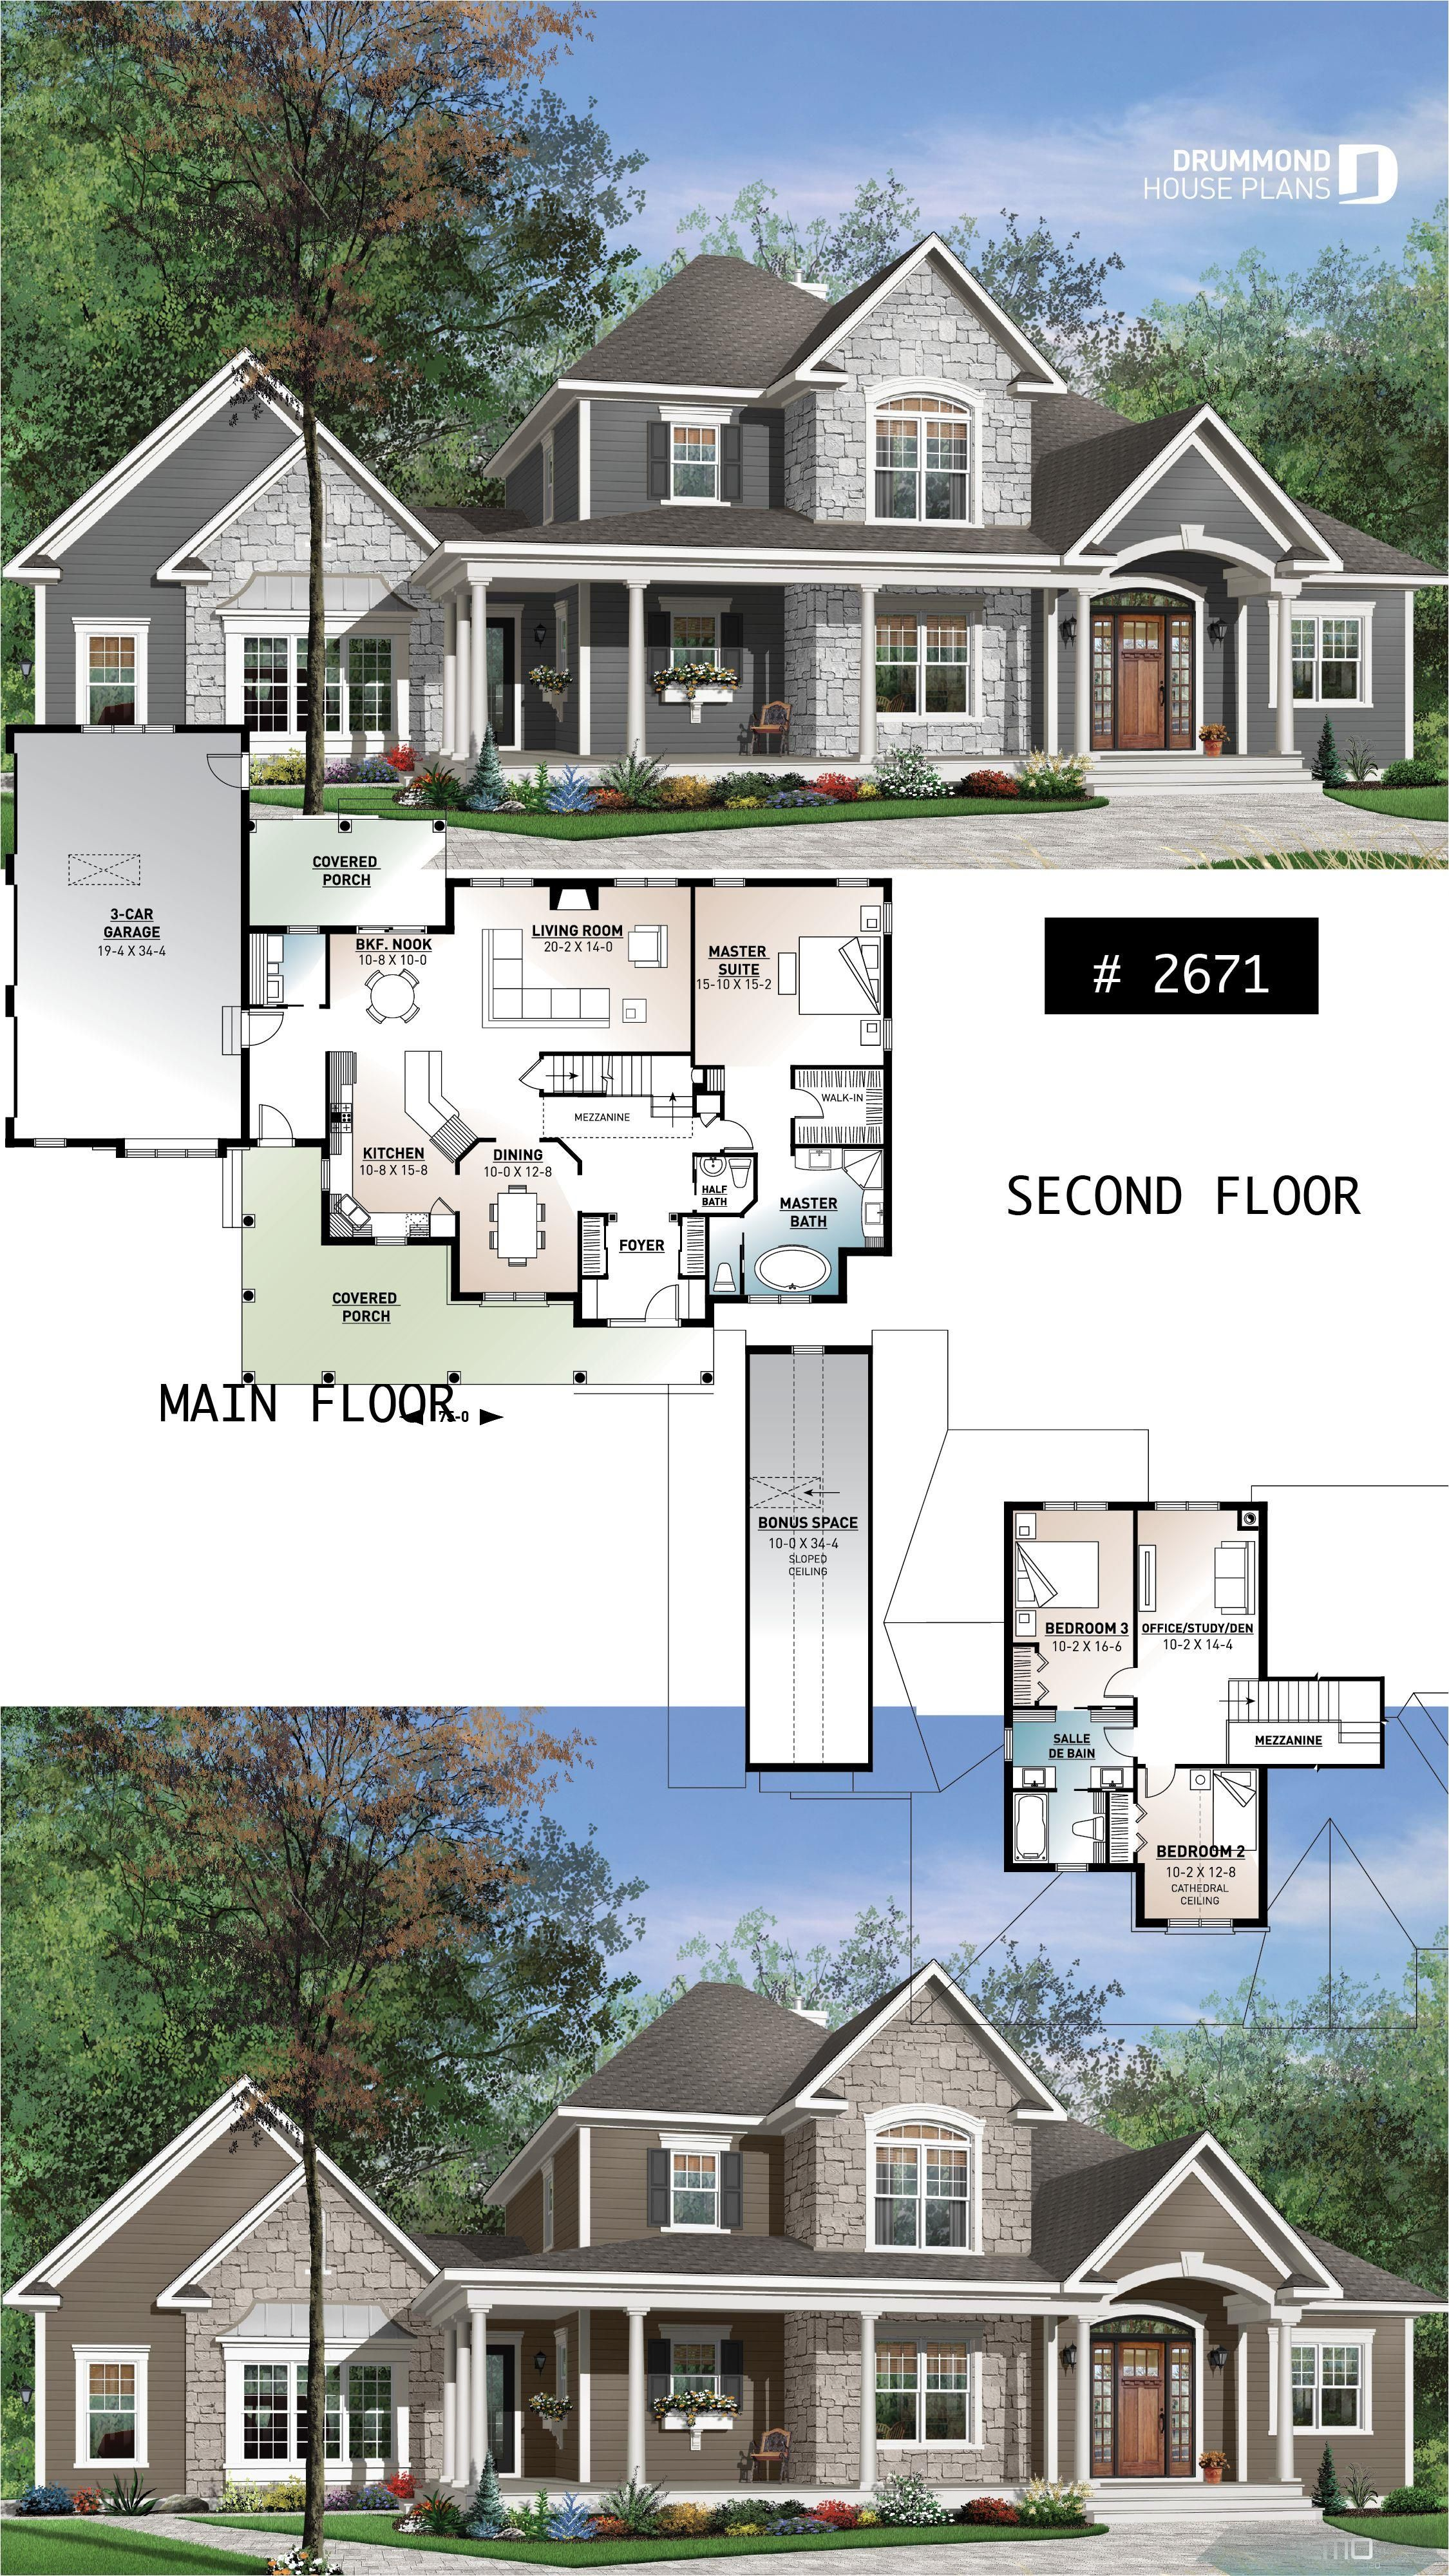 Nov 5 2018 3 To 4 Bedroom Ranch Style Home With Open Floor Plan And 3 Car Garage Planebungalow Maison Ranch House Plans Sims House Plans Floor Plans Ranch